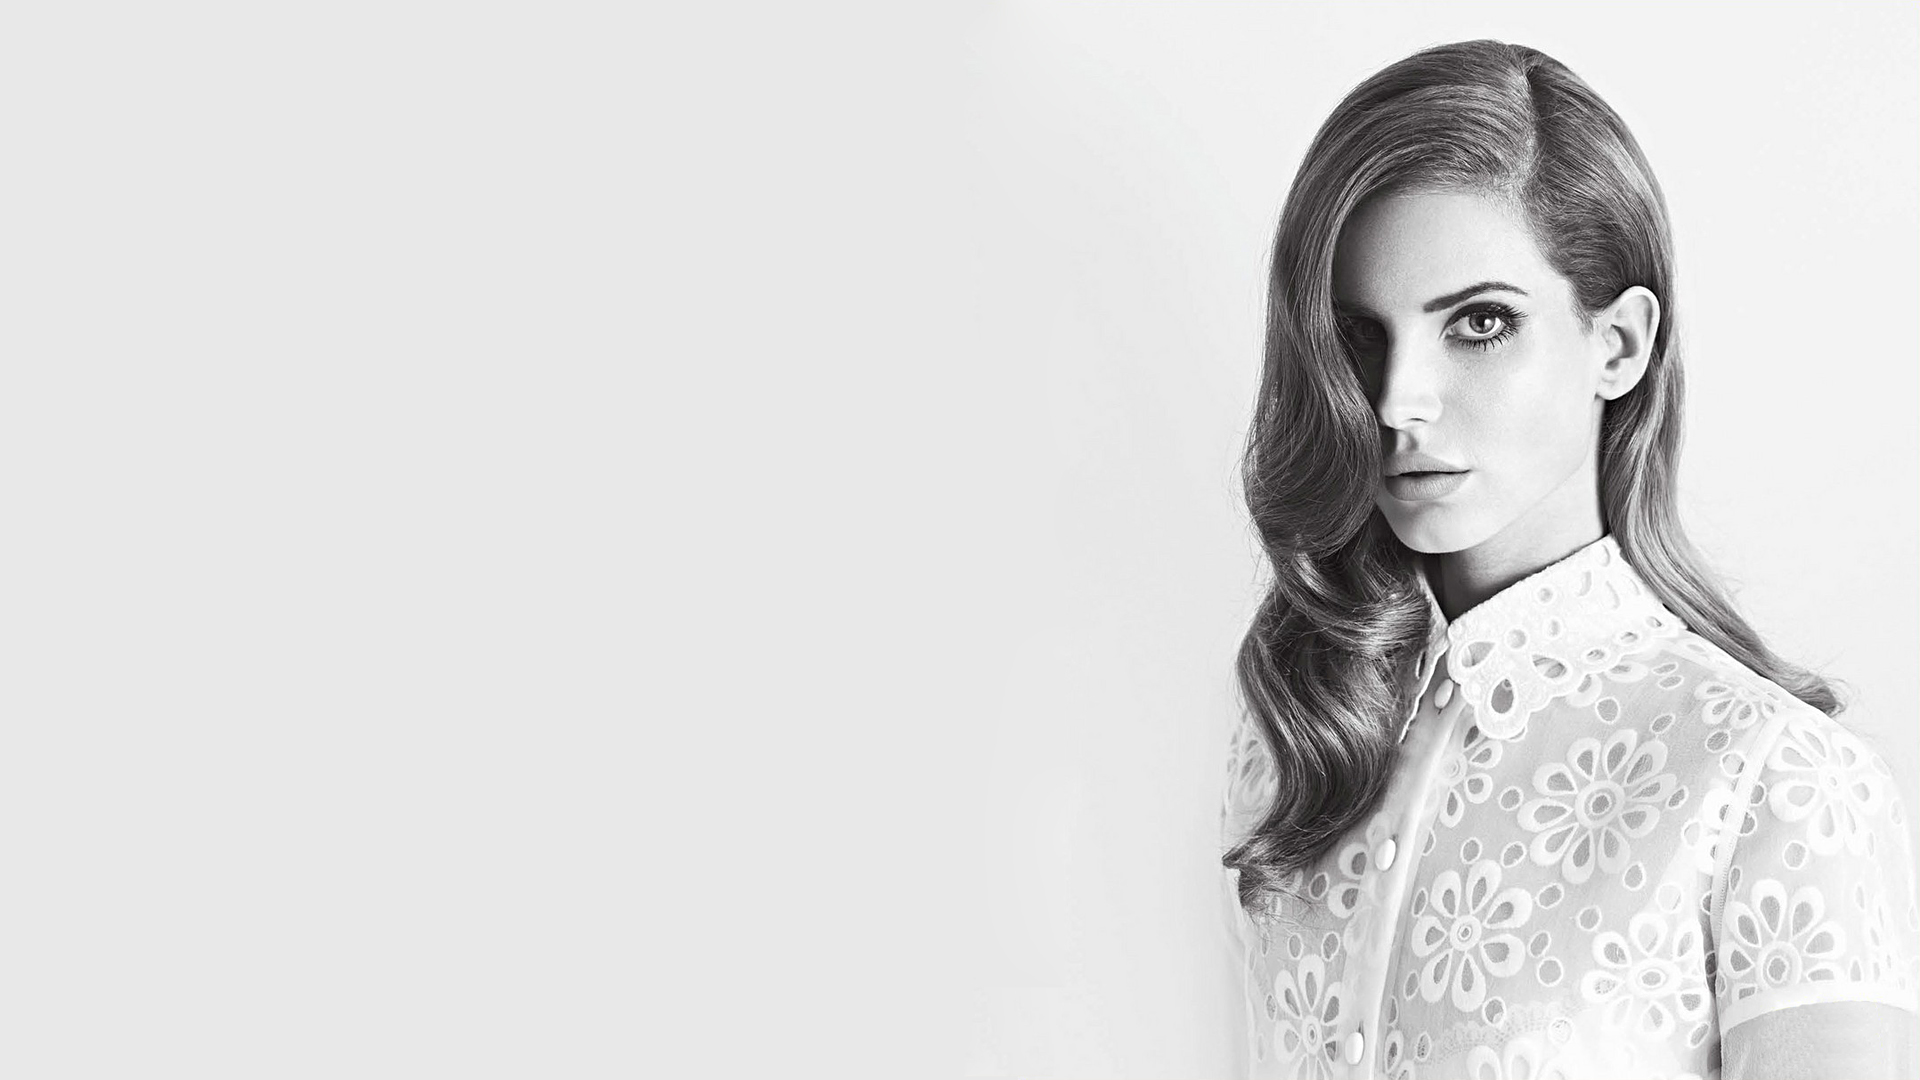 lana-del-rey-black-and-white-wallpaper